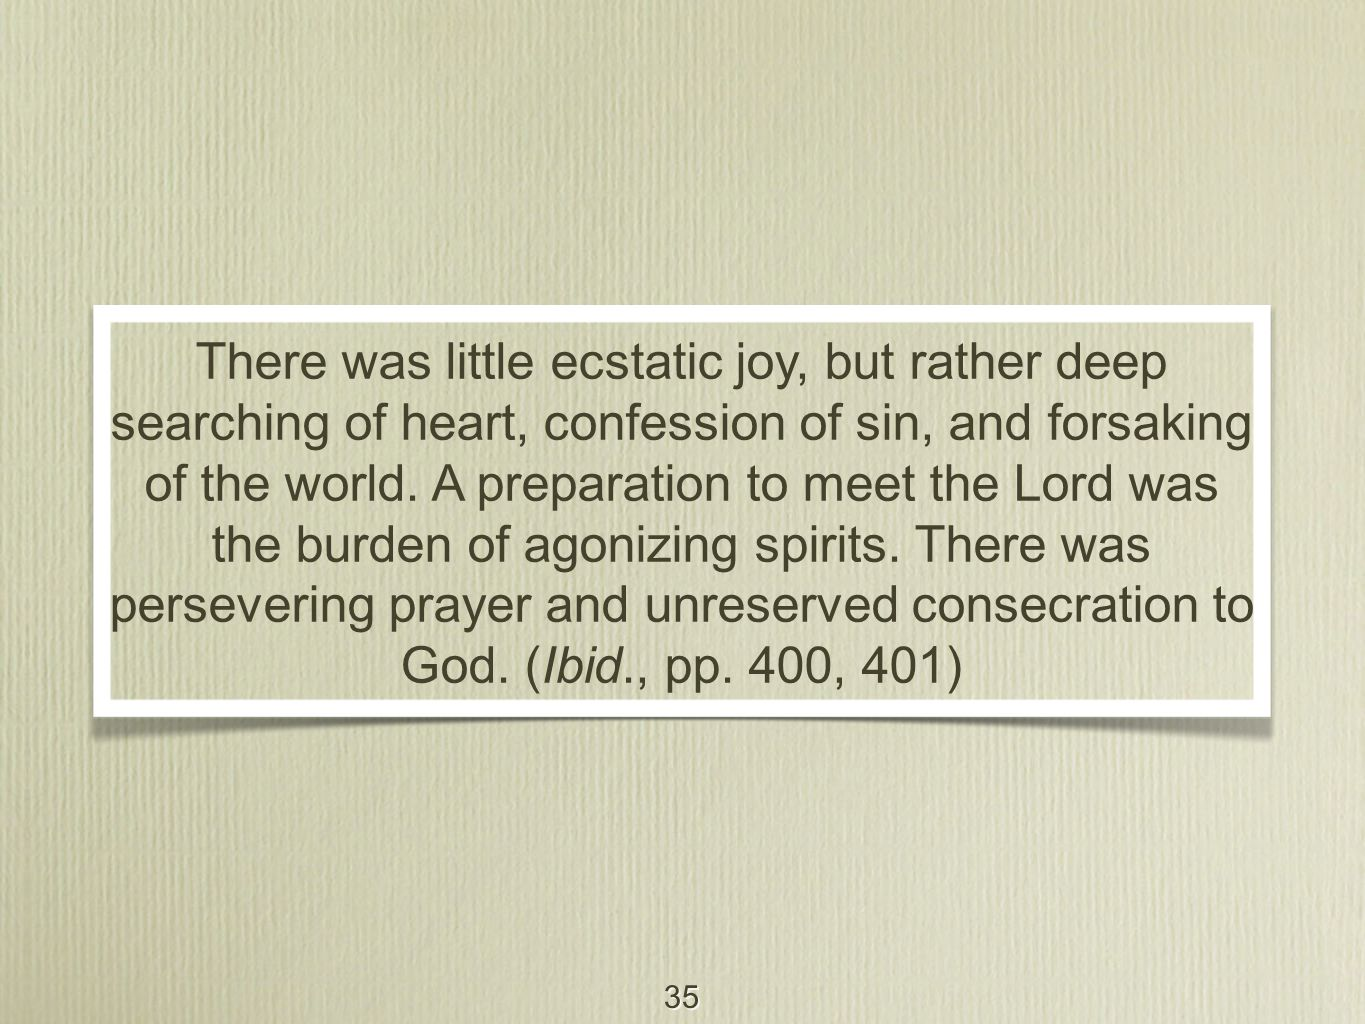 35 There was little ecstatic joy, but rather deep searching of heart, confession of sin, and forsaking of the world.